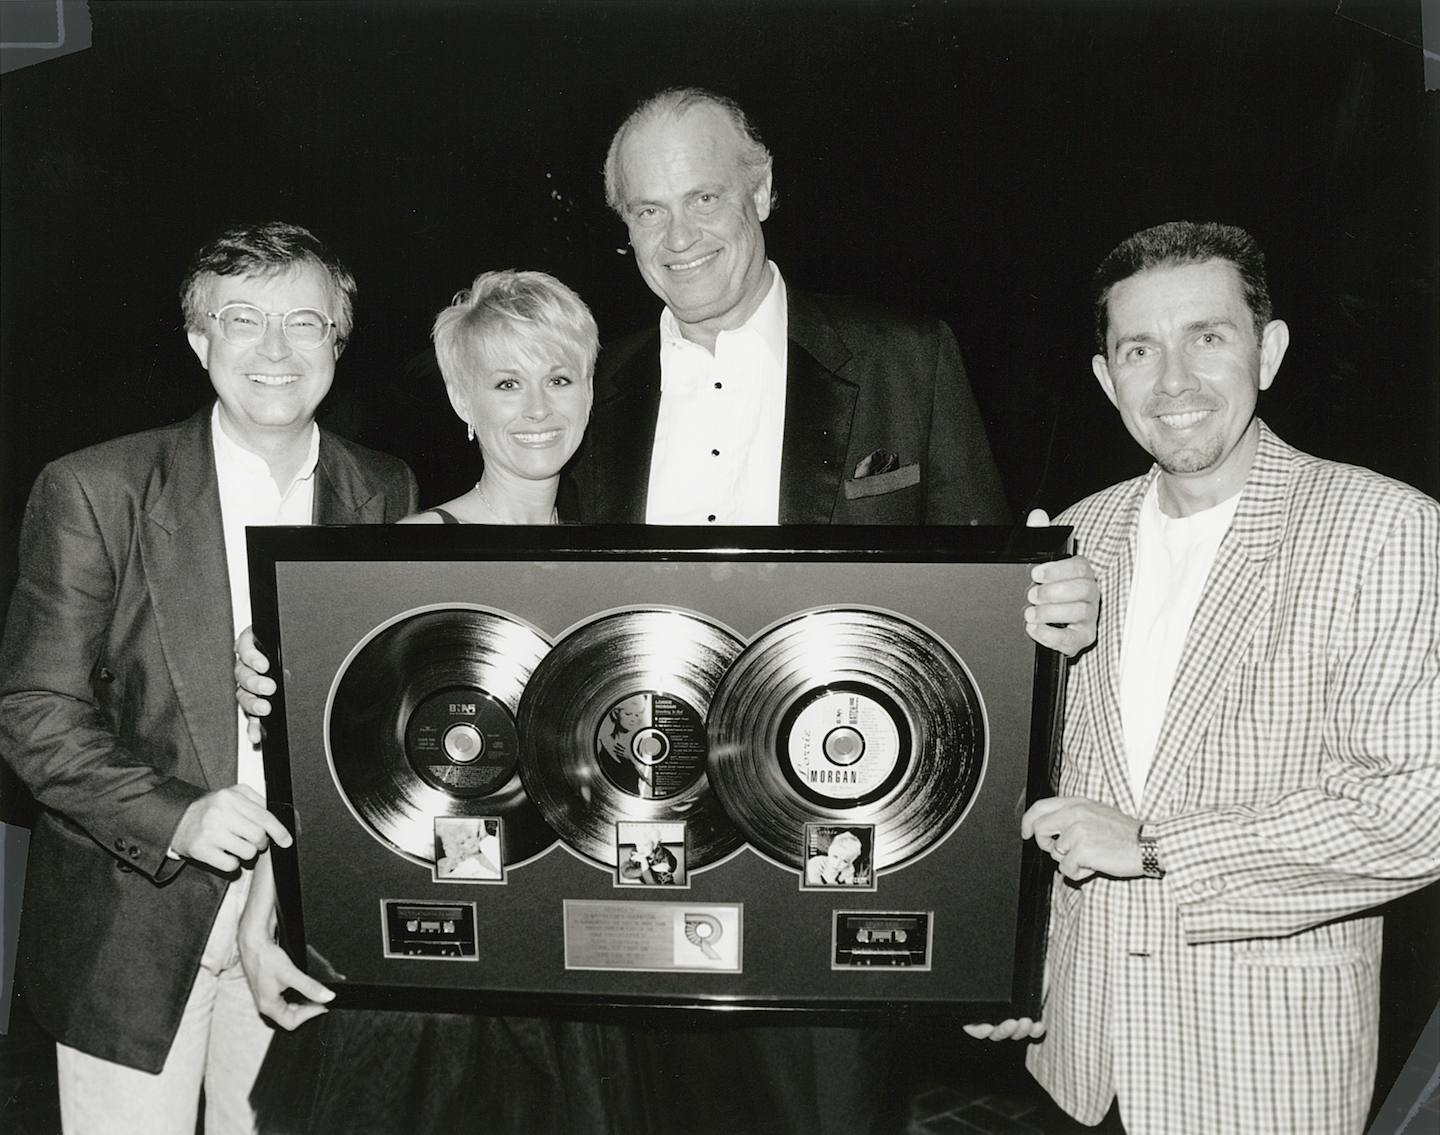 A celebration for Lorrie Morgan with Dale Turner, Joe Galante, and Senator Fred Thompson